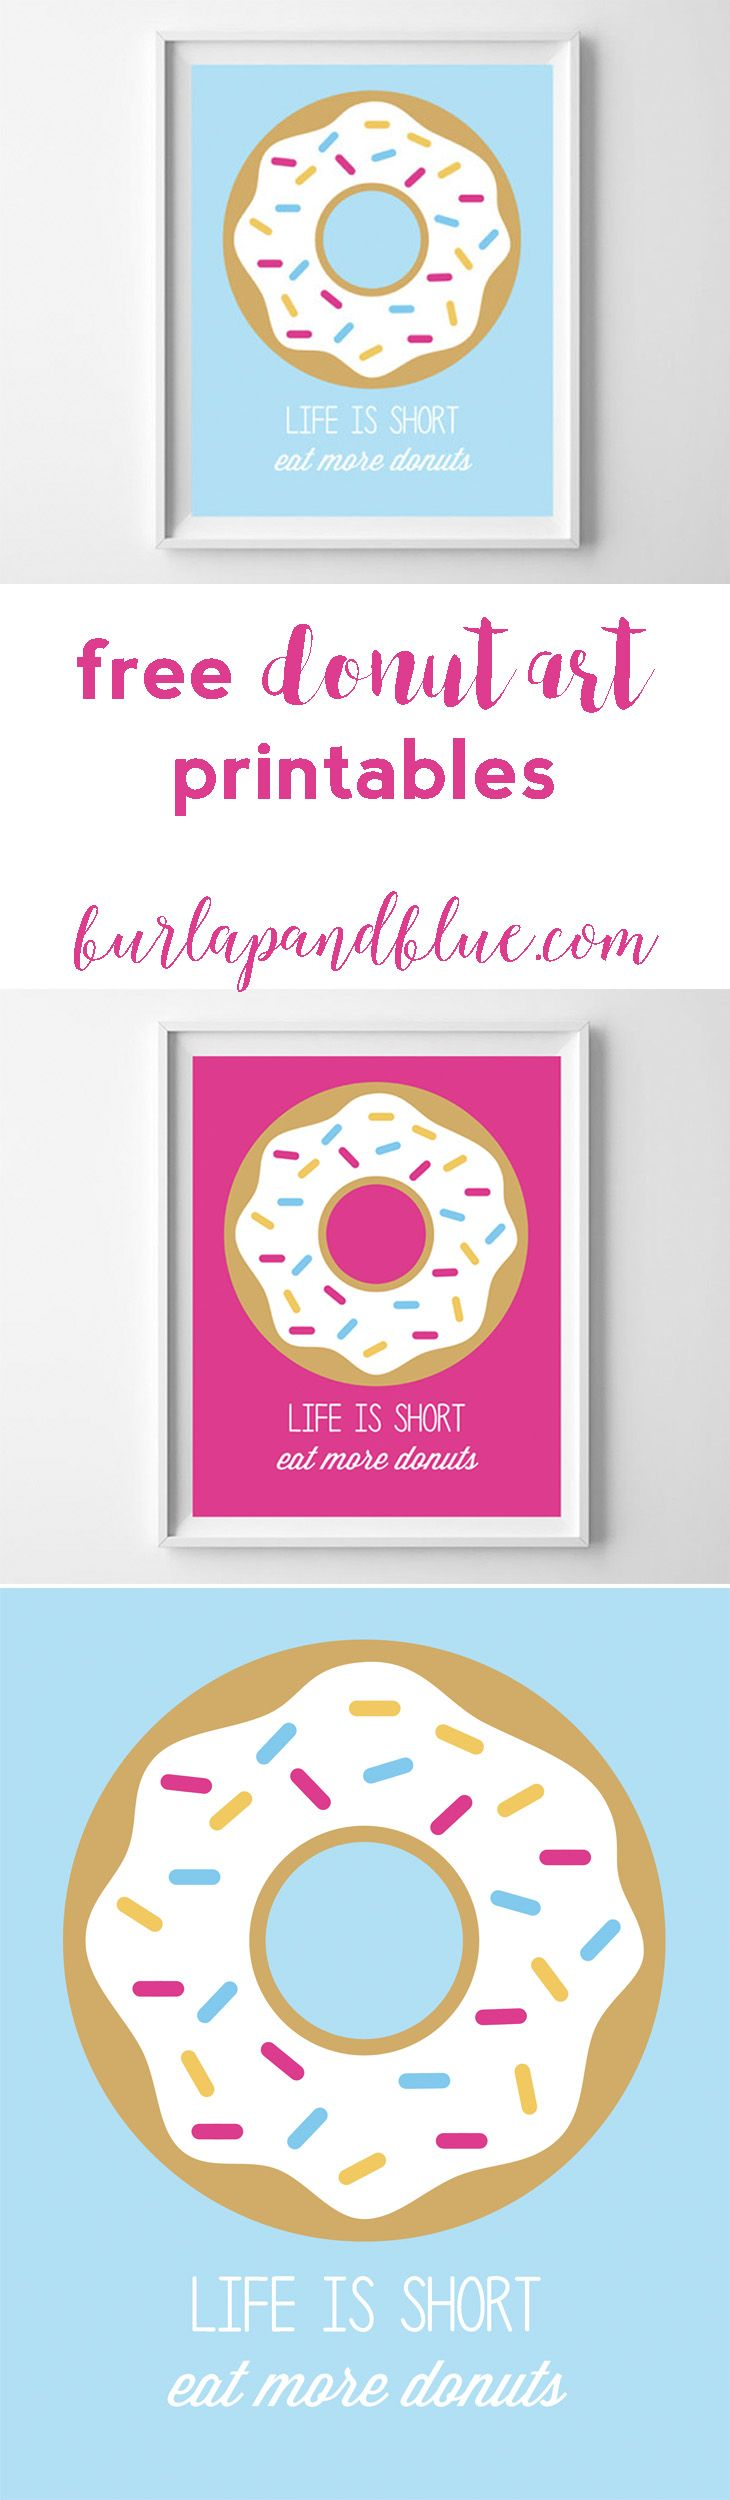 """free donut art printables! """"life is short, eat more donuts"""" cute kitchen art or gift idea! #ad"""